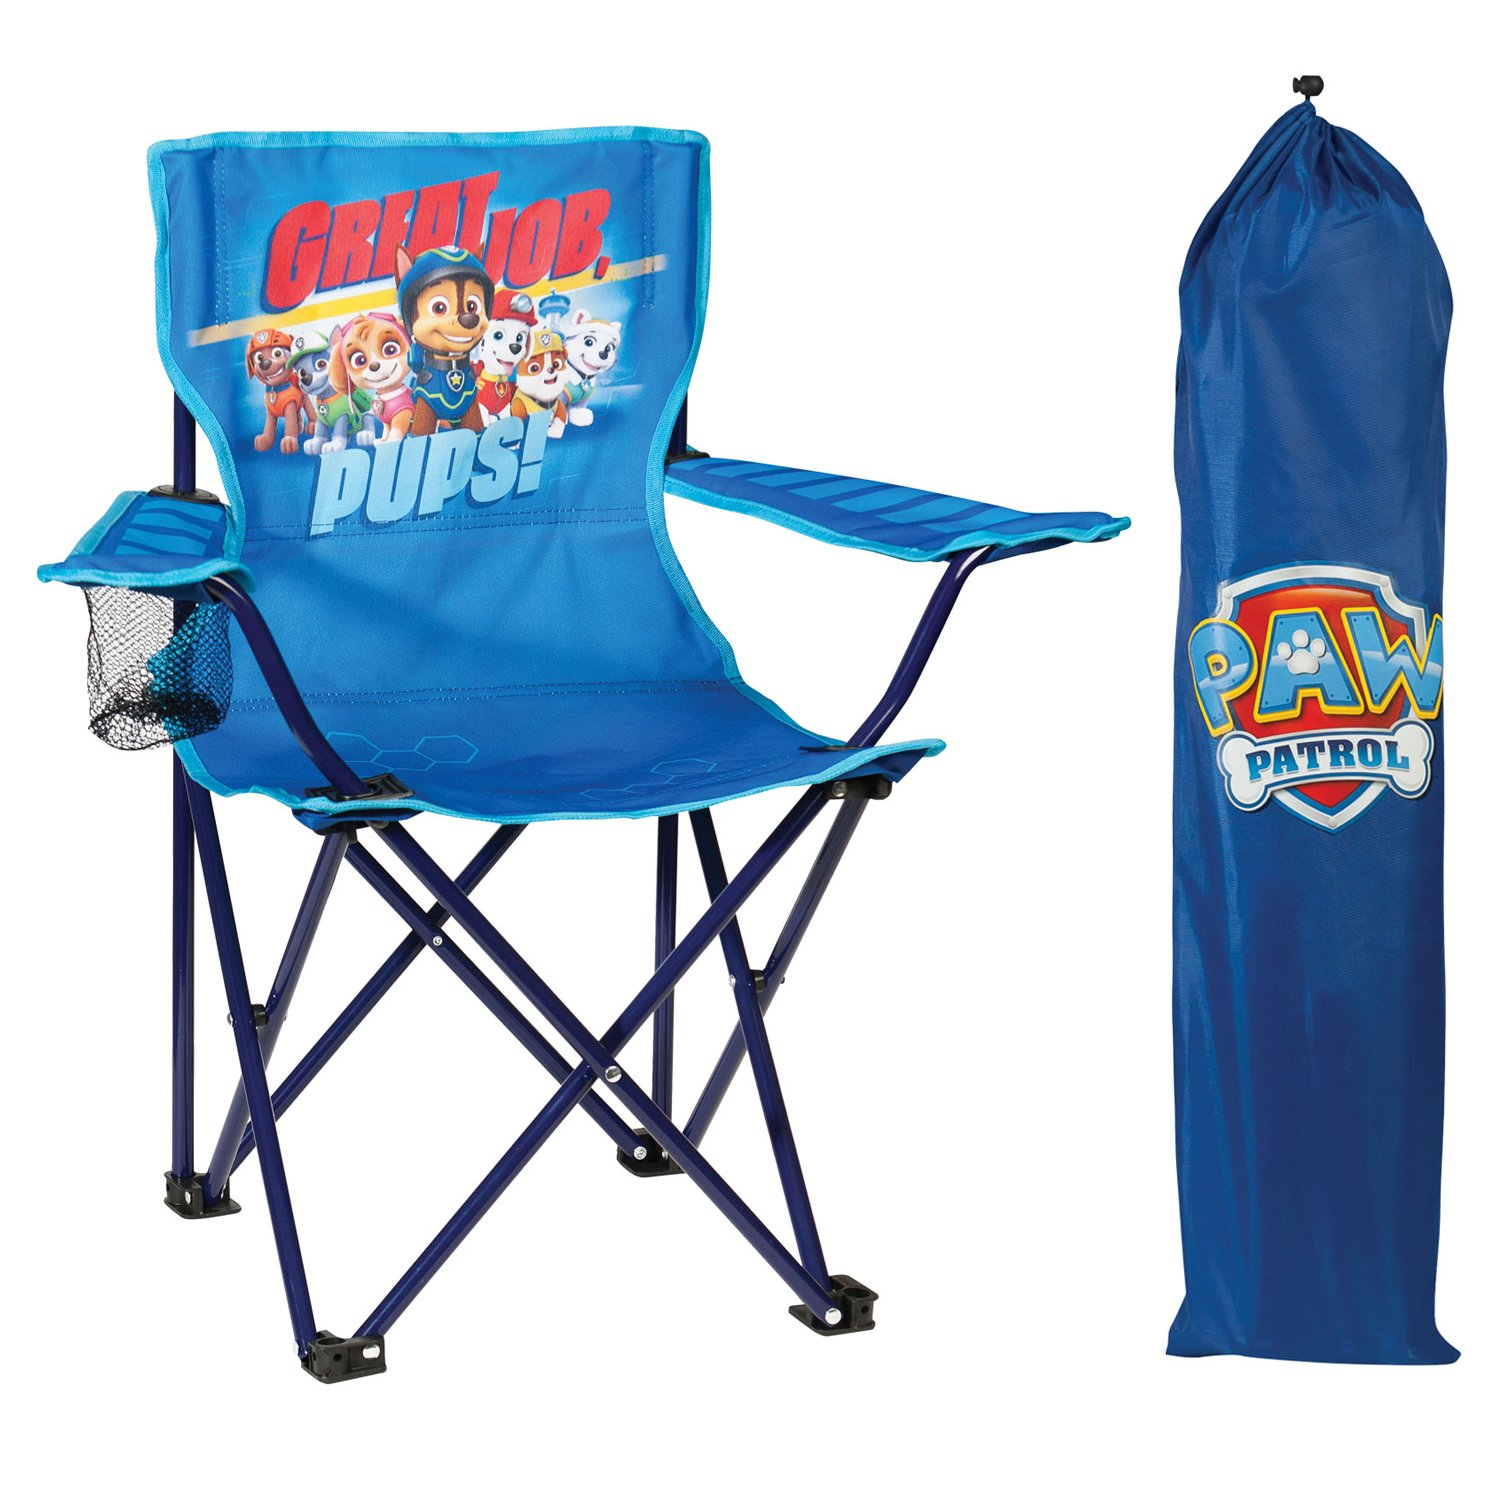 Nickelodeon Paw Patrol Fold N' Go Chair with Storage Bag, Blue by Nickelodeon